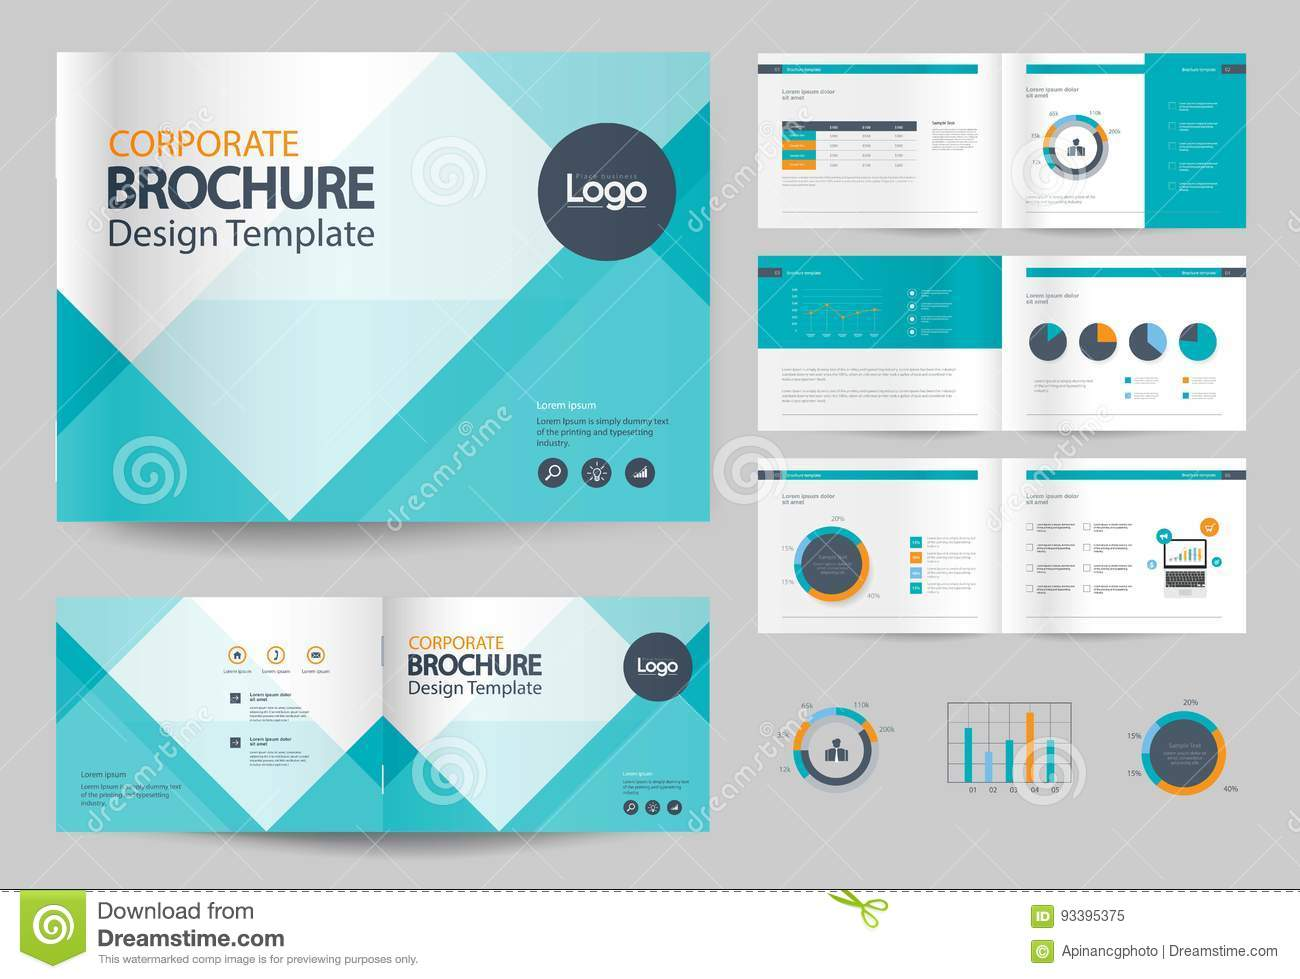 Business Brochure Design Template And Page Layout For Company - Brochure design template